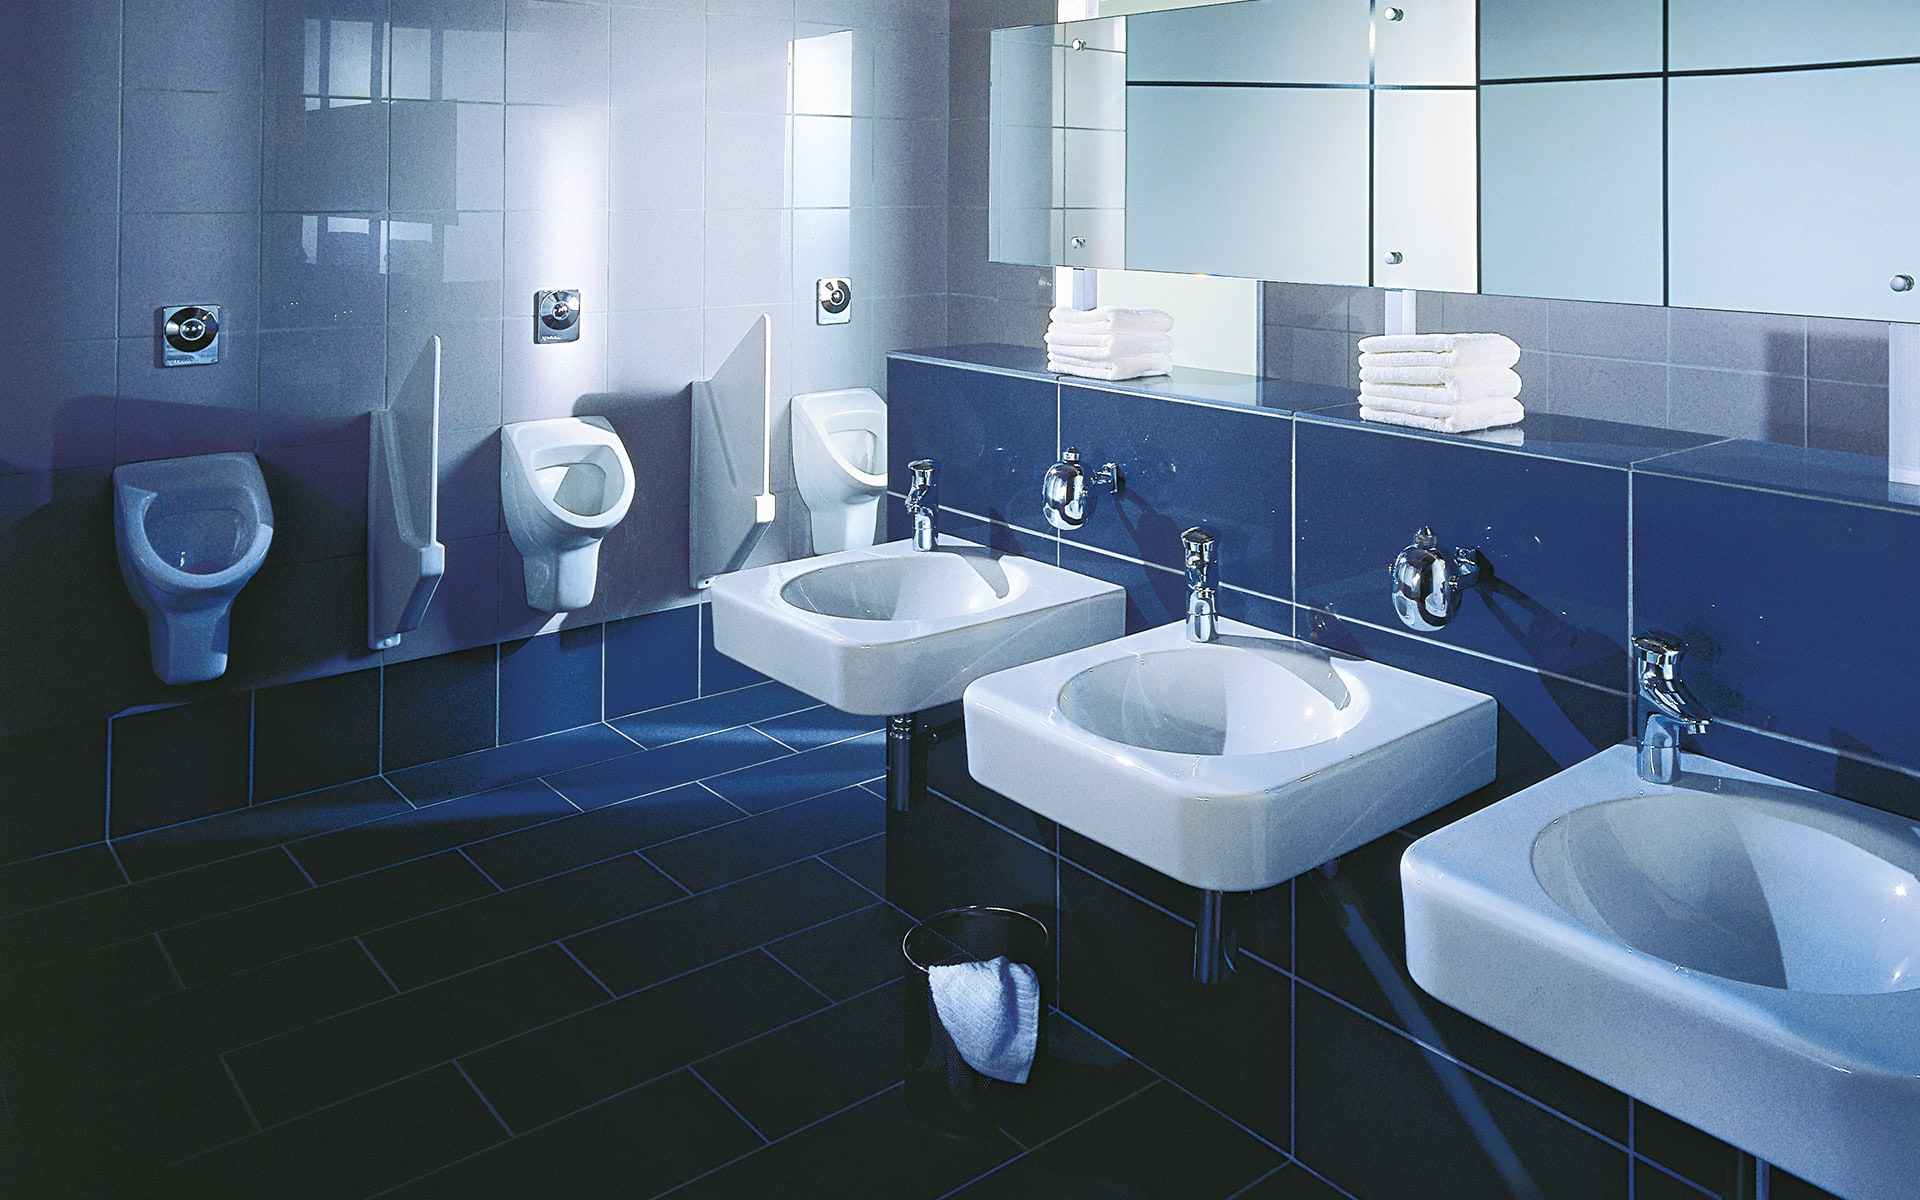 Minimalistic white washbasins for Villeroy & Boch by ITO Design, created in 2001